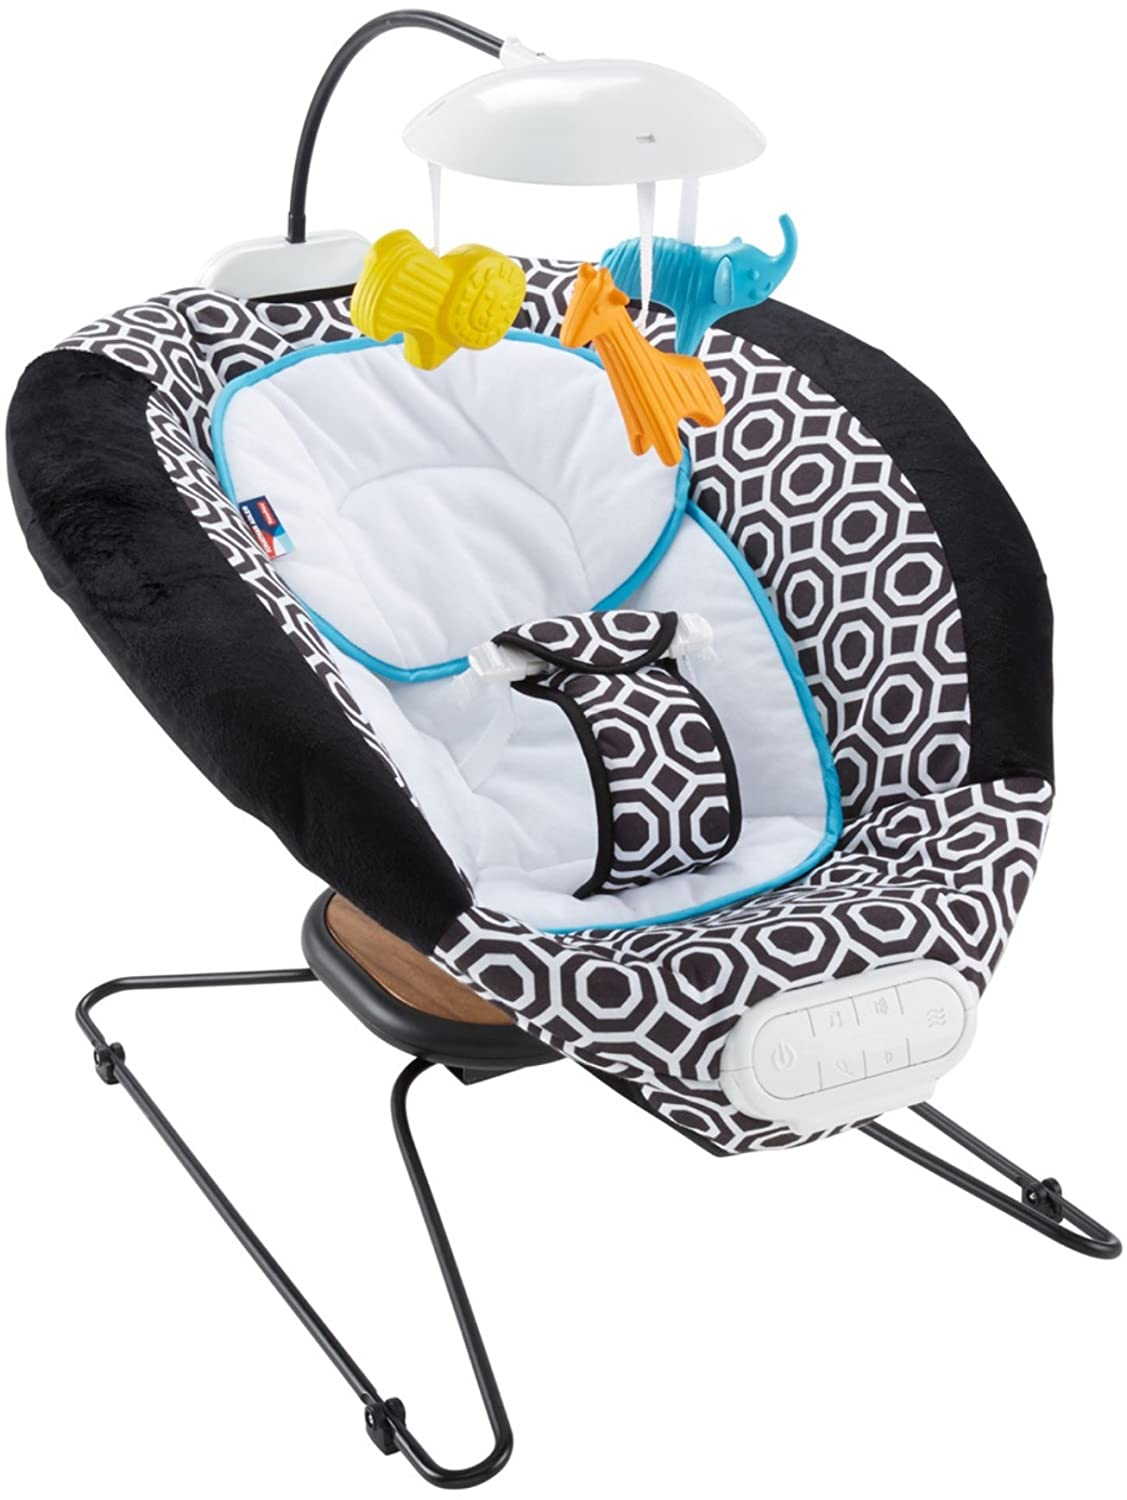 Fisher-Price Jonathan Adler Deluxe Bouncer, Black/White DPN49